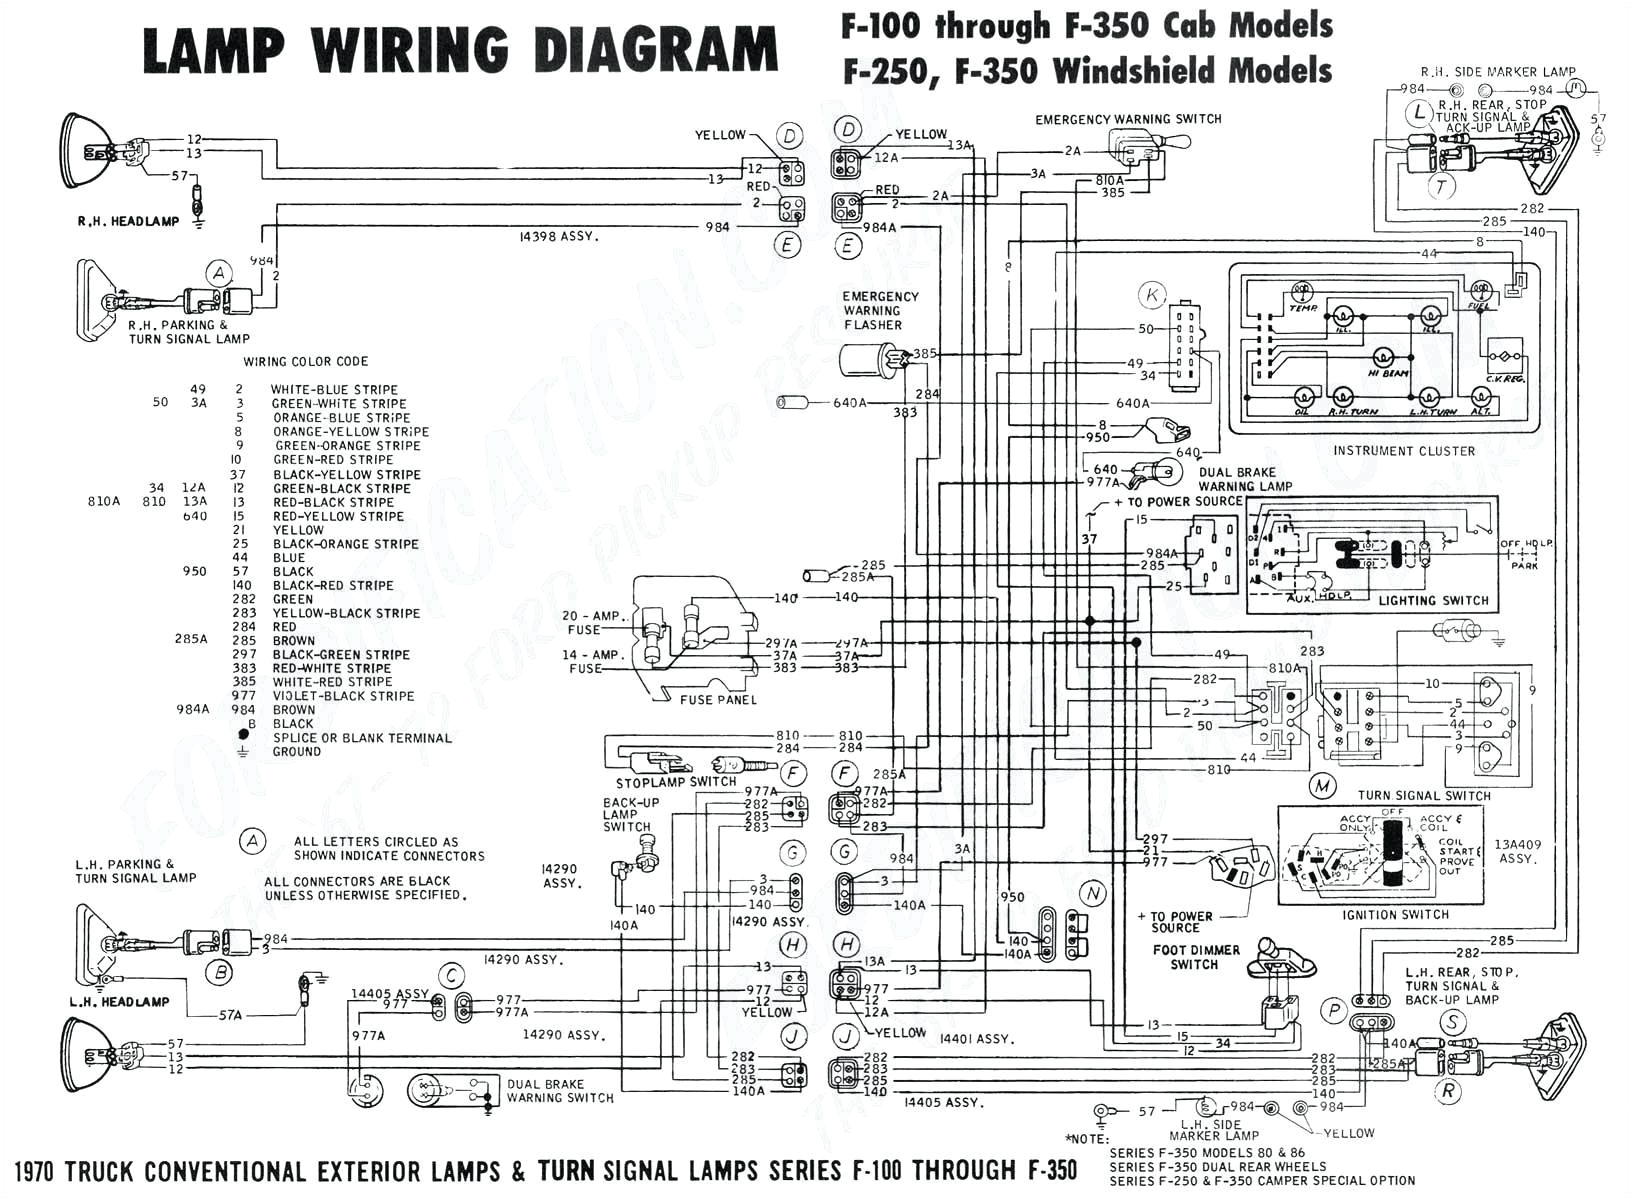 12012 ford crown victoria wiring diagram abs wiring diagrams konsult 08 flhx wiring diagram abs wiring